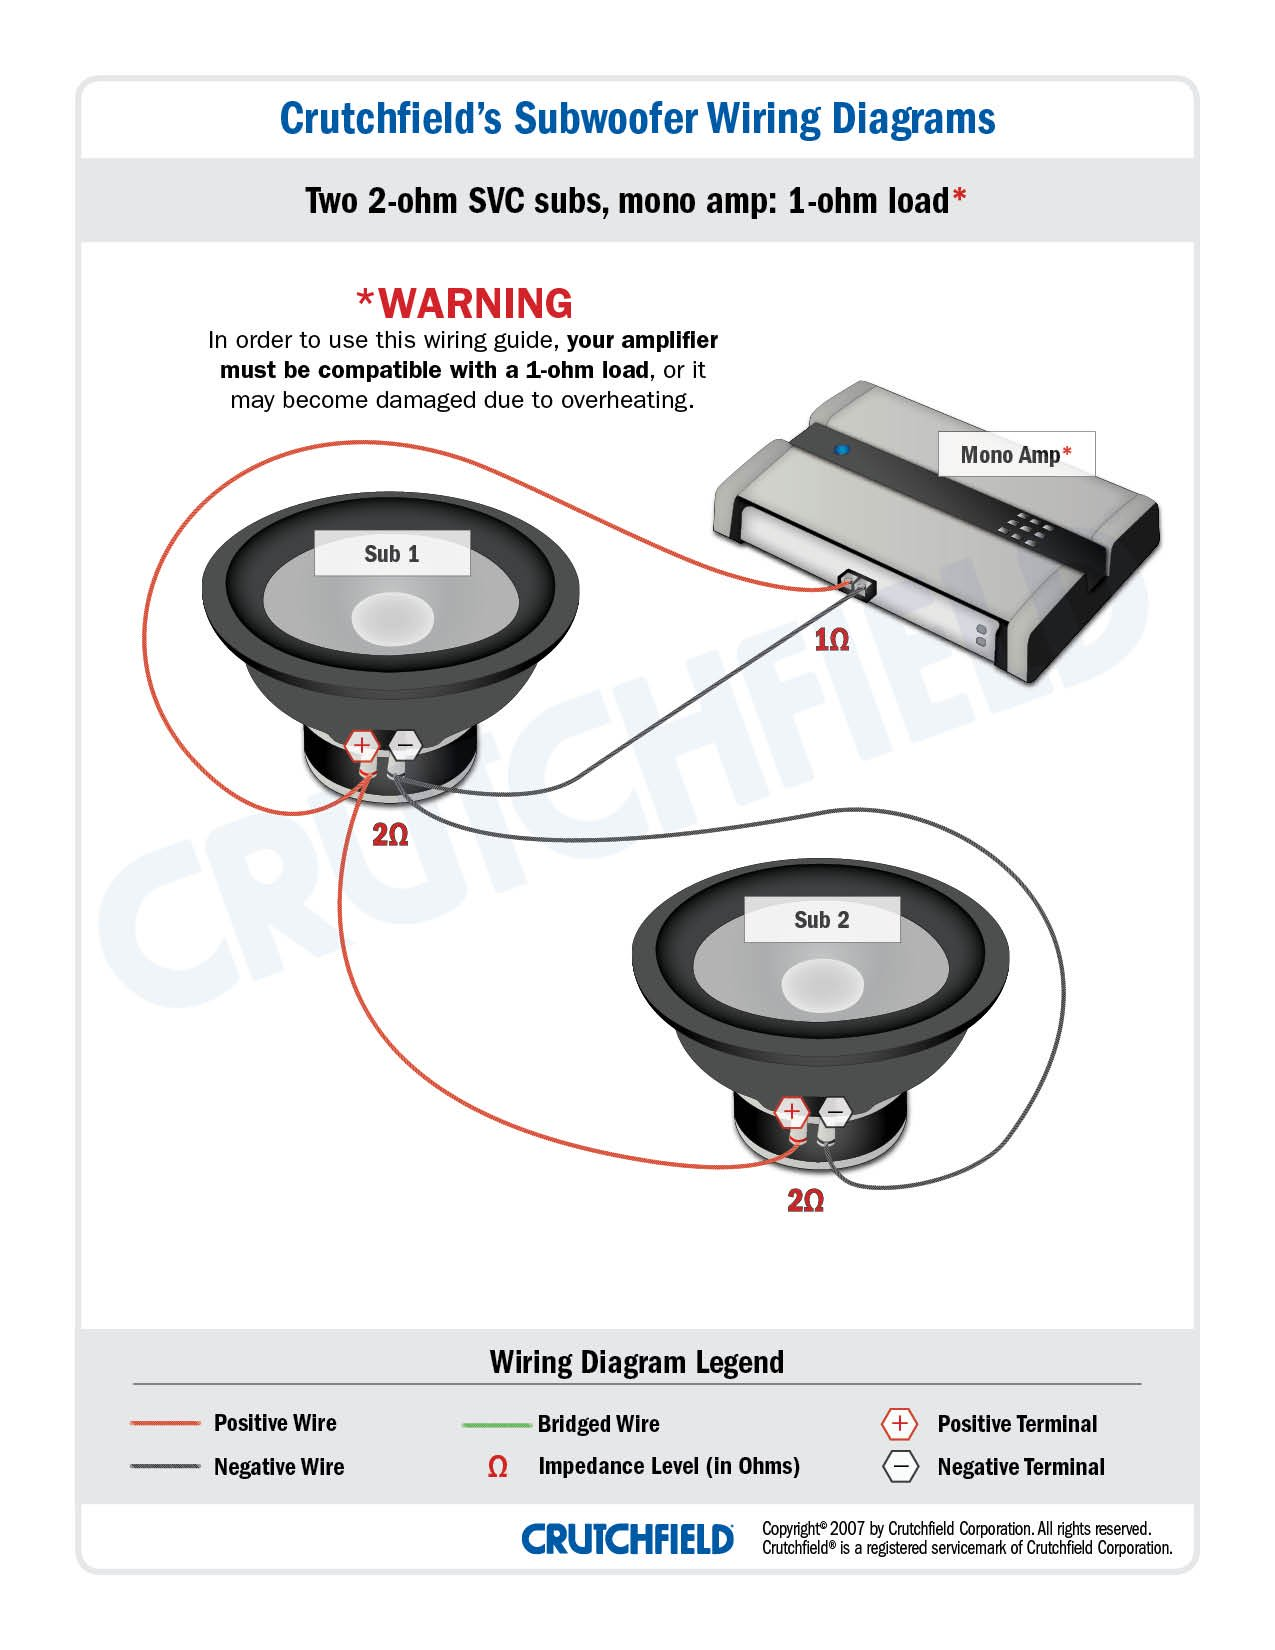 Marvelous Subwoofer Wiring Diagrams How To Wire Your Subs Wiring Cloud Ymoonsalvmohammedshrineorg